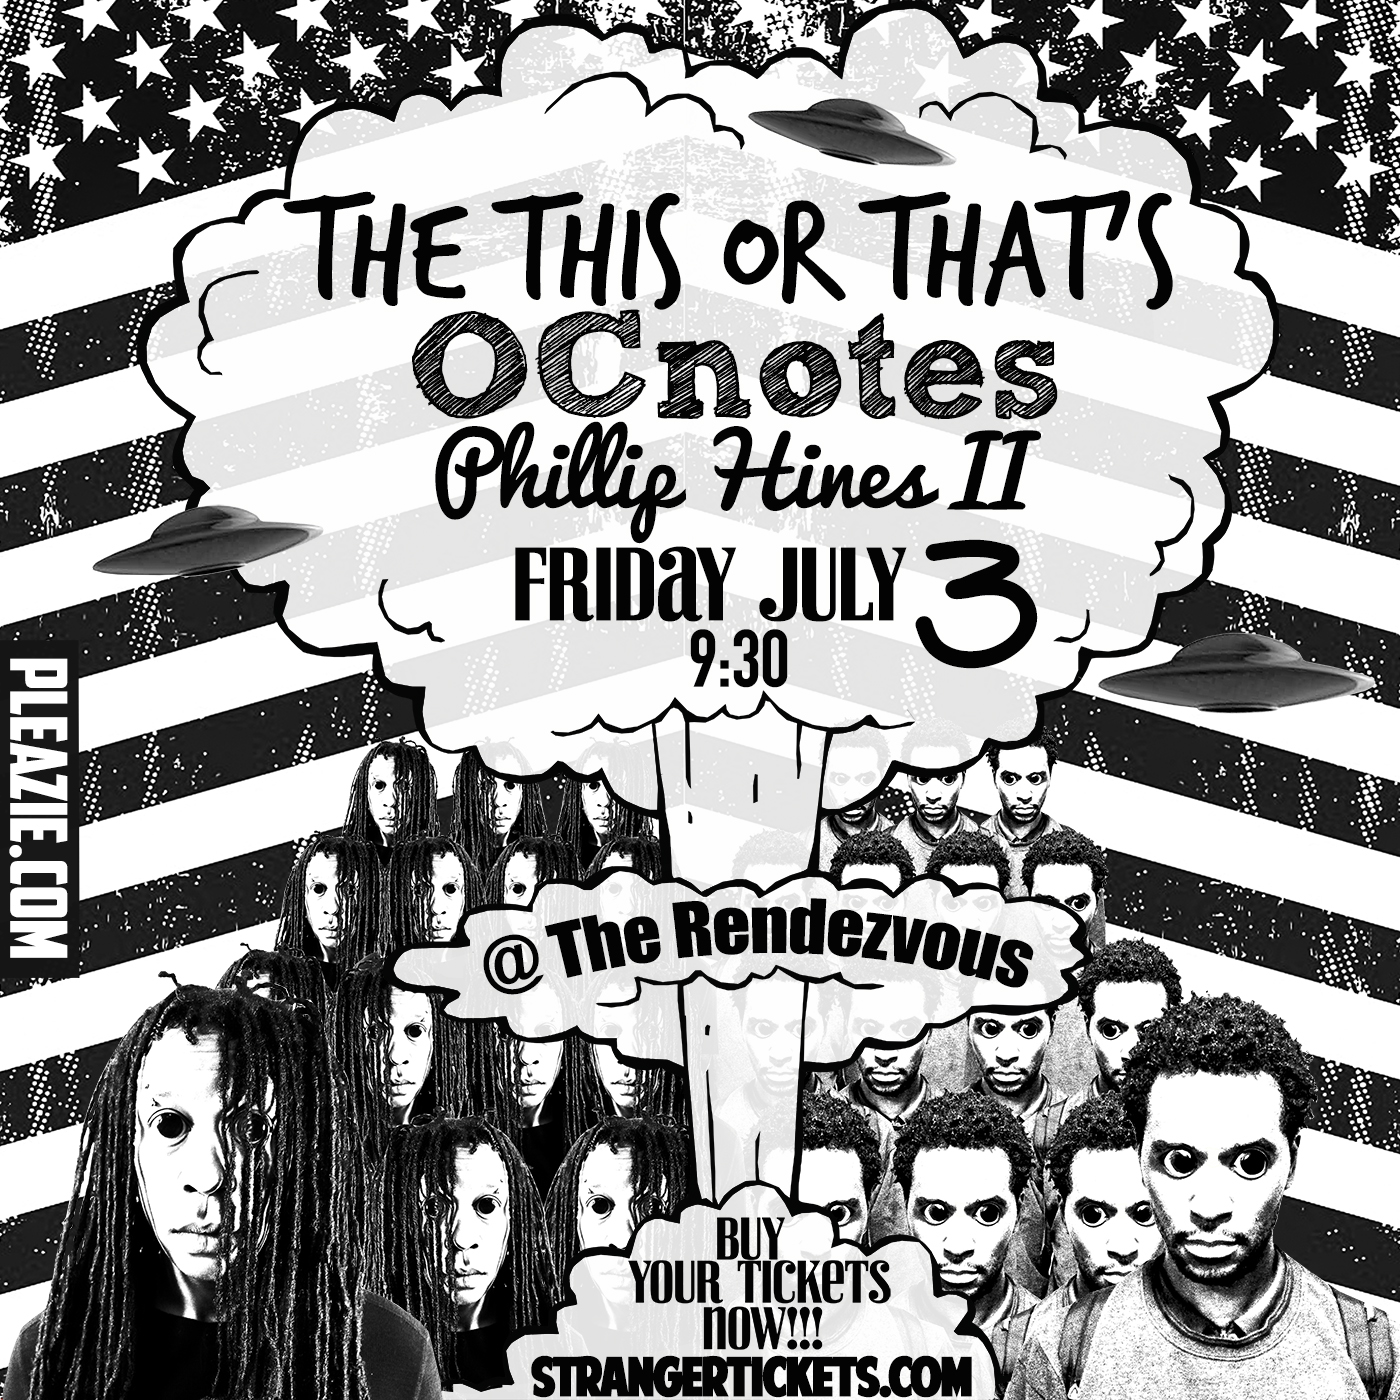 The This Or That's, OCnotes, And Phillip Hines II LIVE @ The Rendezvous Jewel Box Theater - July 3rd Doors @ 9:30